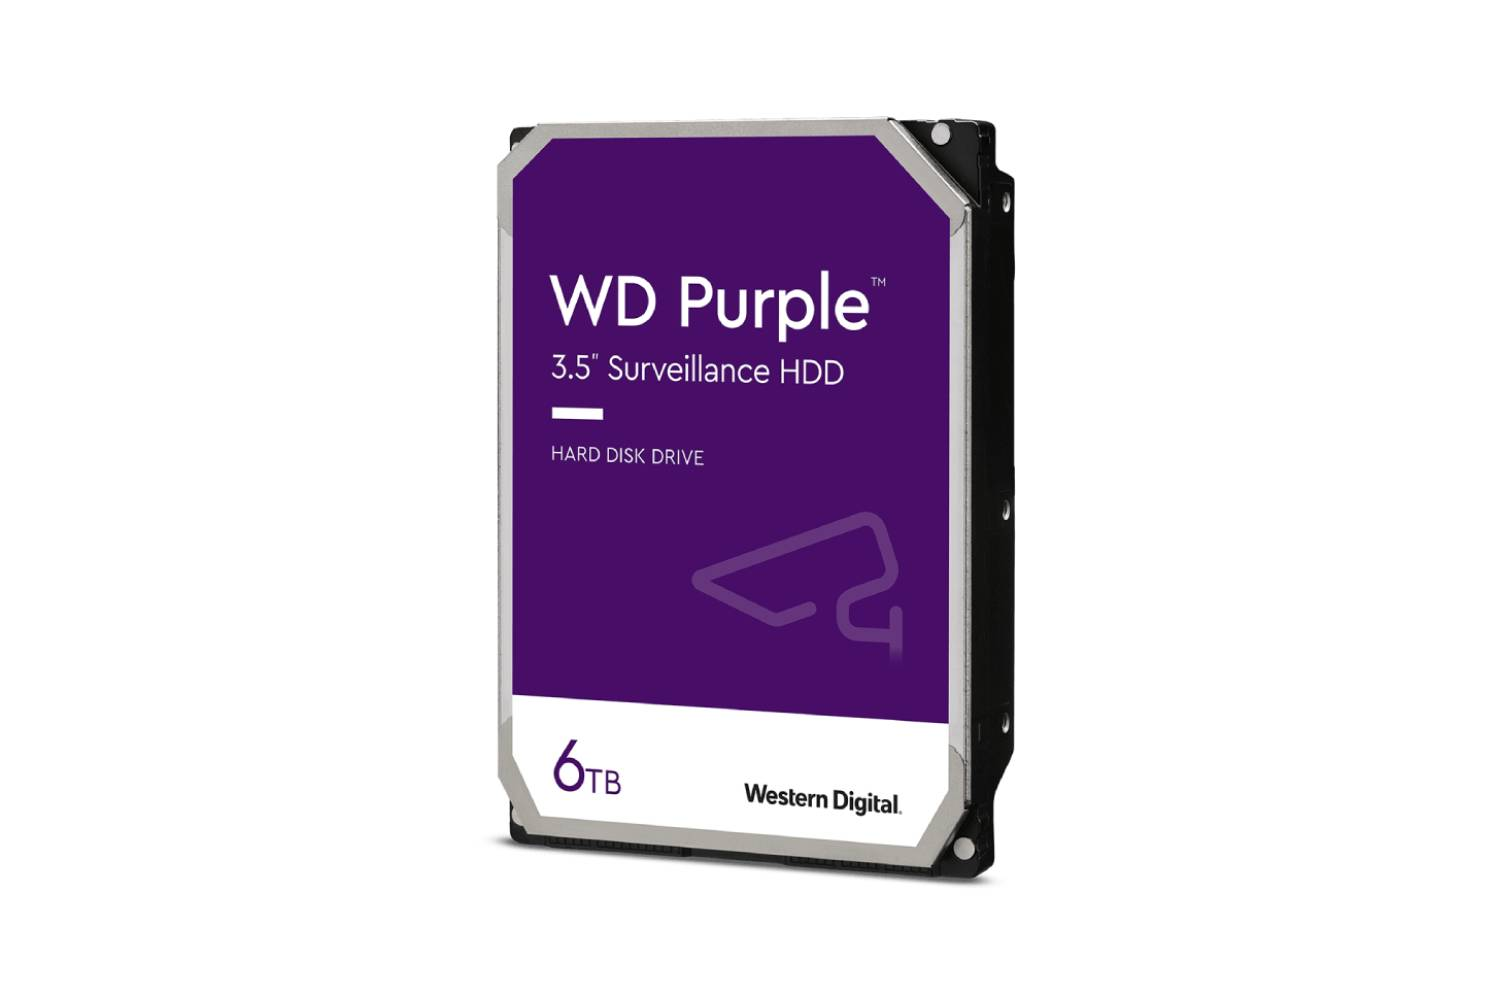 WD Purple 6TB Surveillance HDD (WD60PURZ)